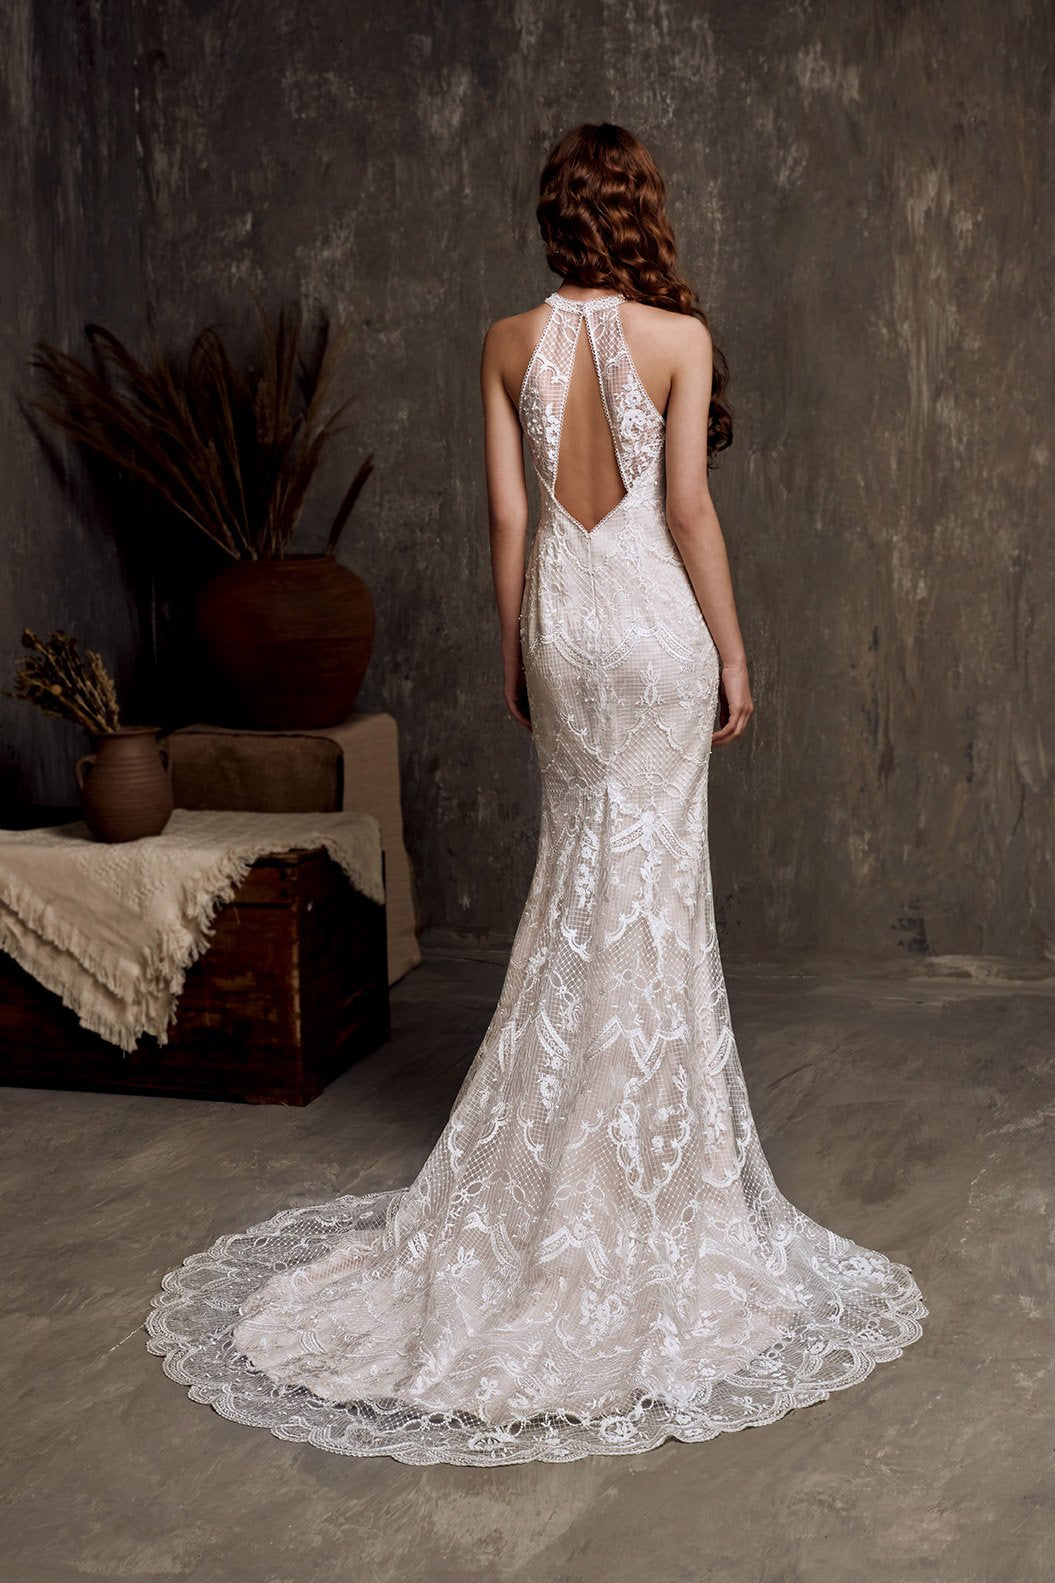 Peri - Sample Gown, Online Sample Sale, Chic Nostalgia - Sample Gown - Eternal Bridal